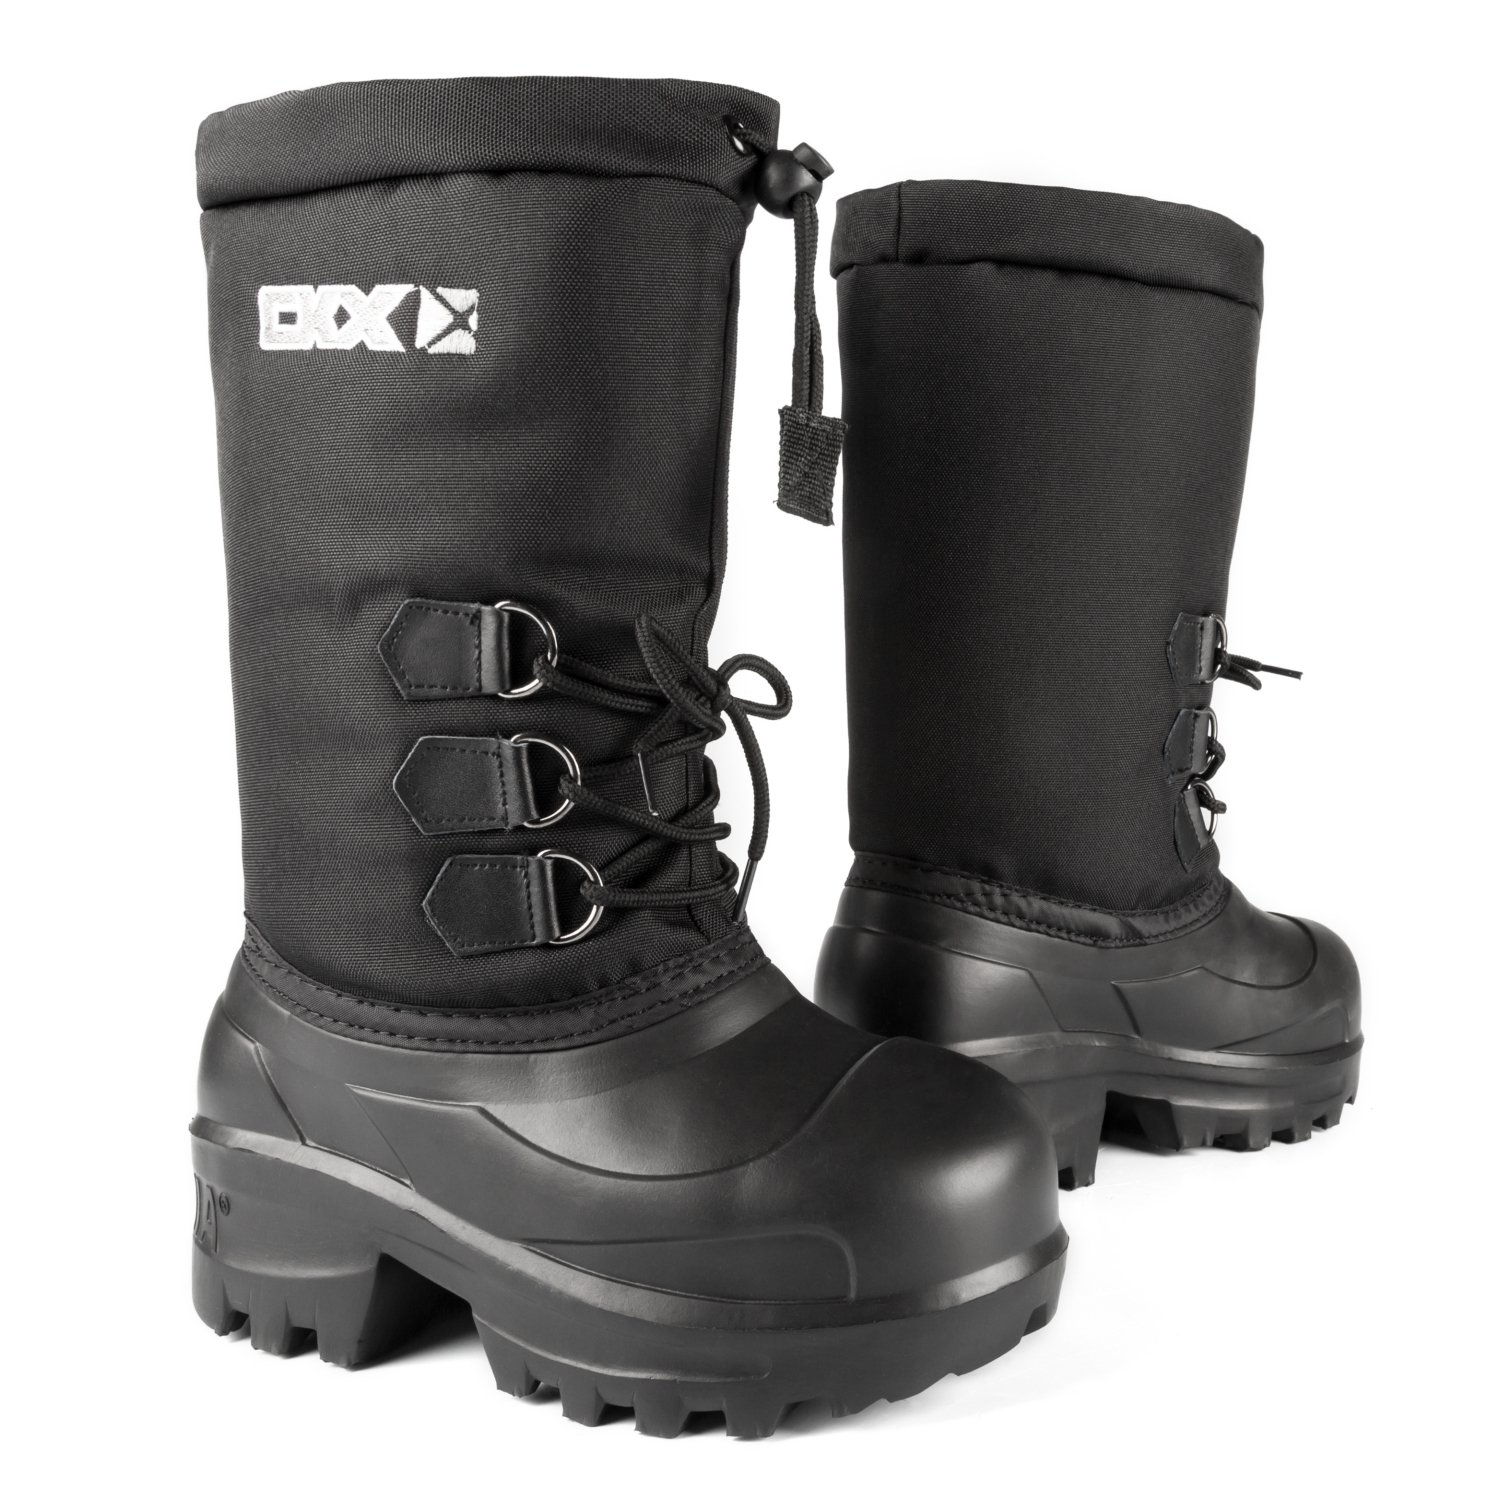 CKX EVA Muk Lite Boots Men - Snowmobile Part# R900-BK-10# 032856